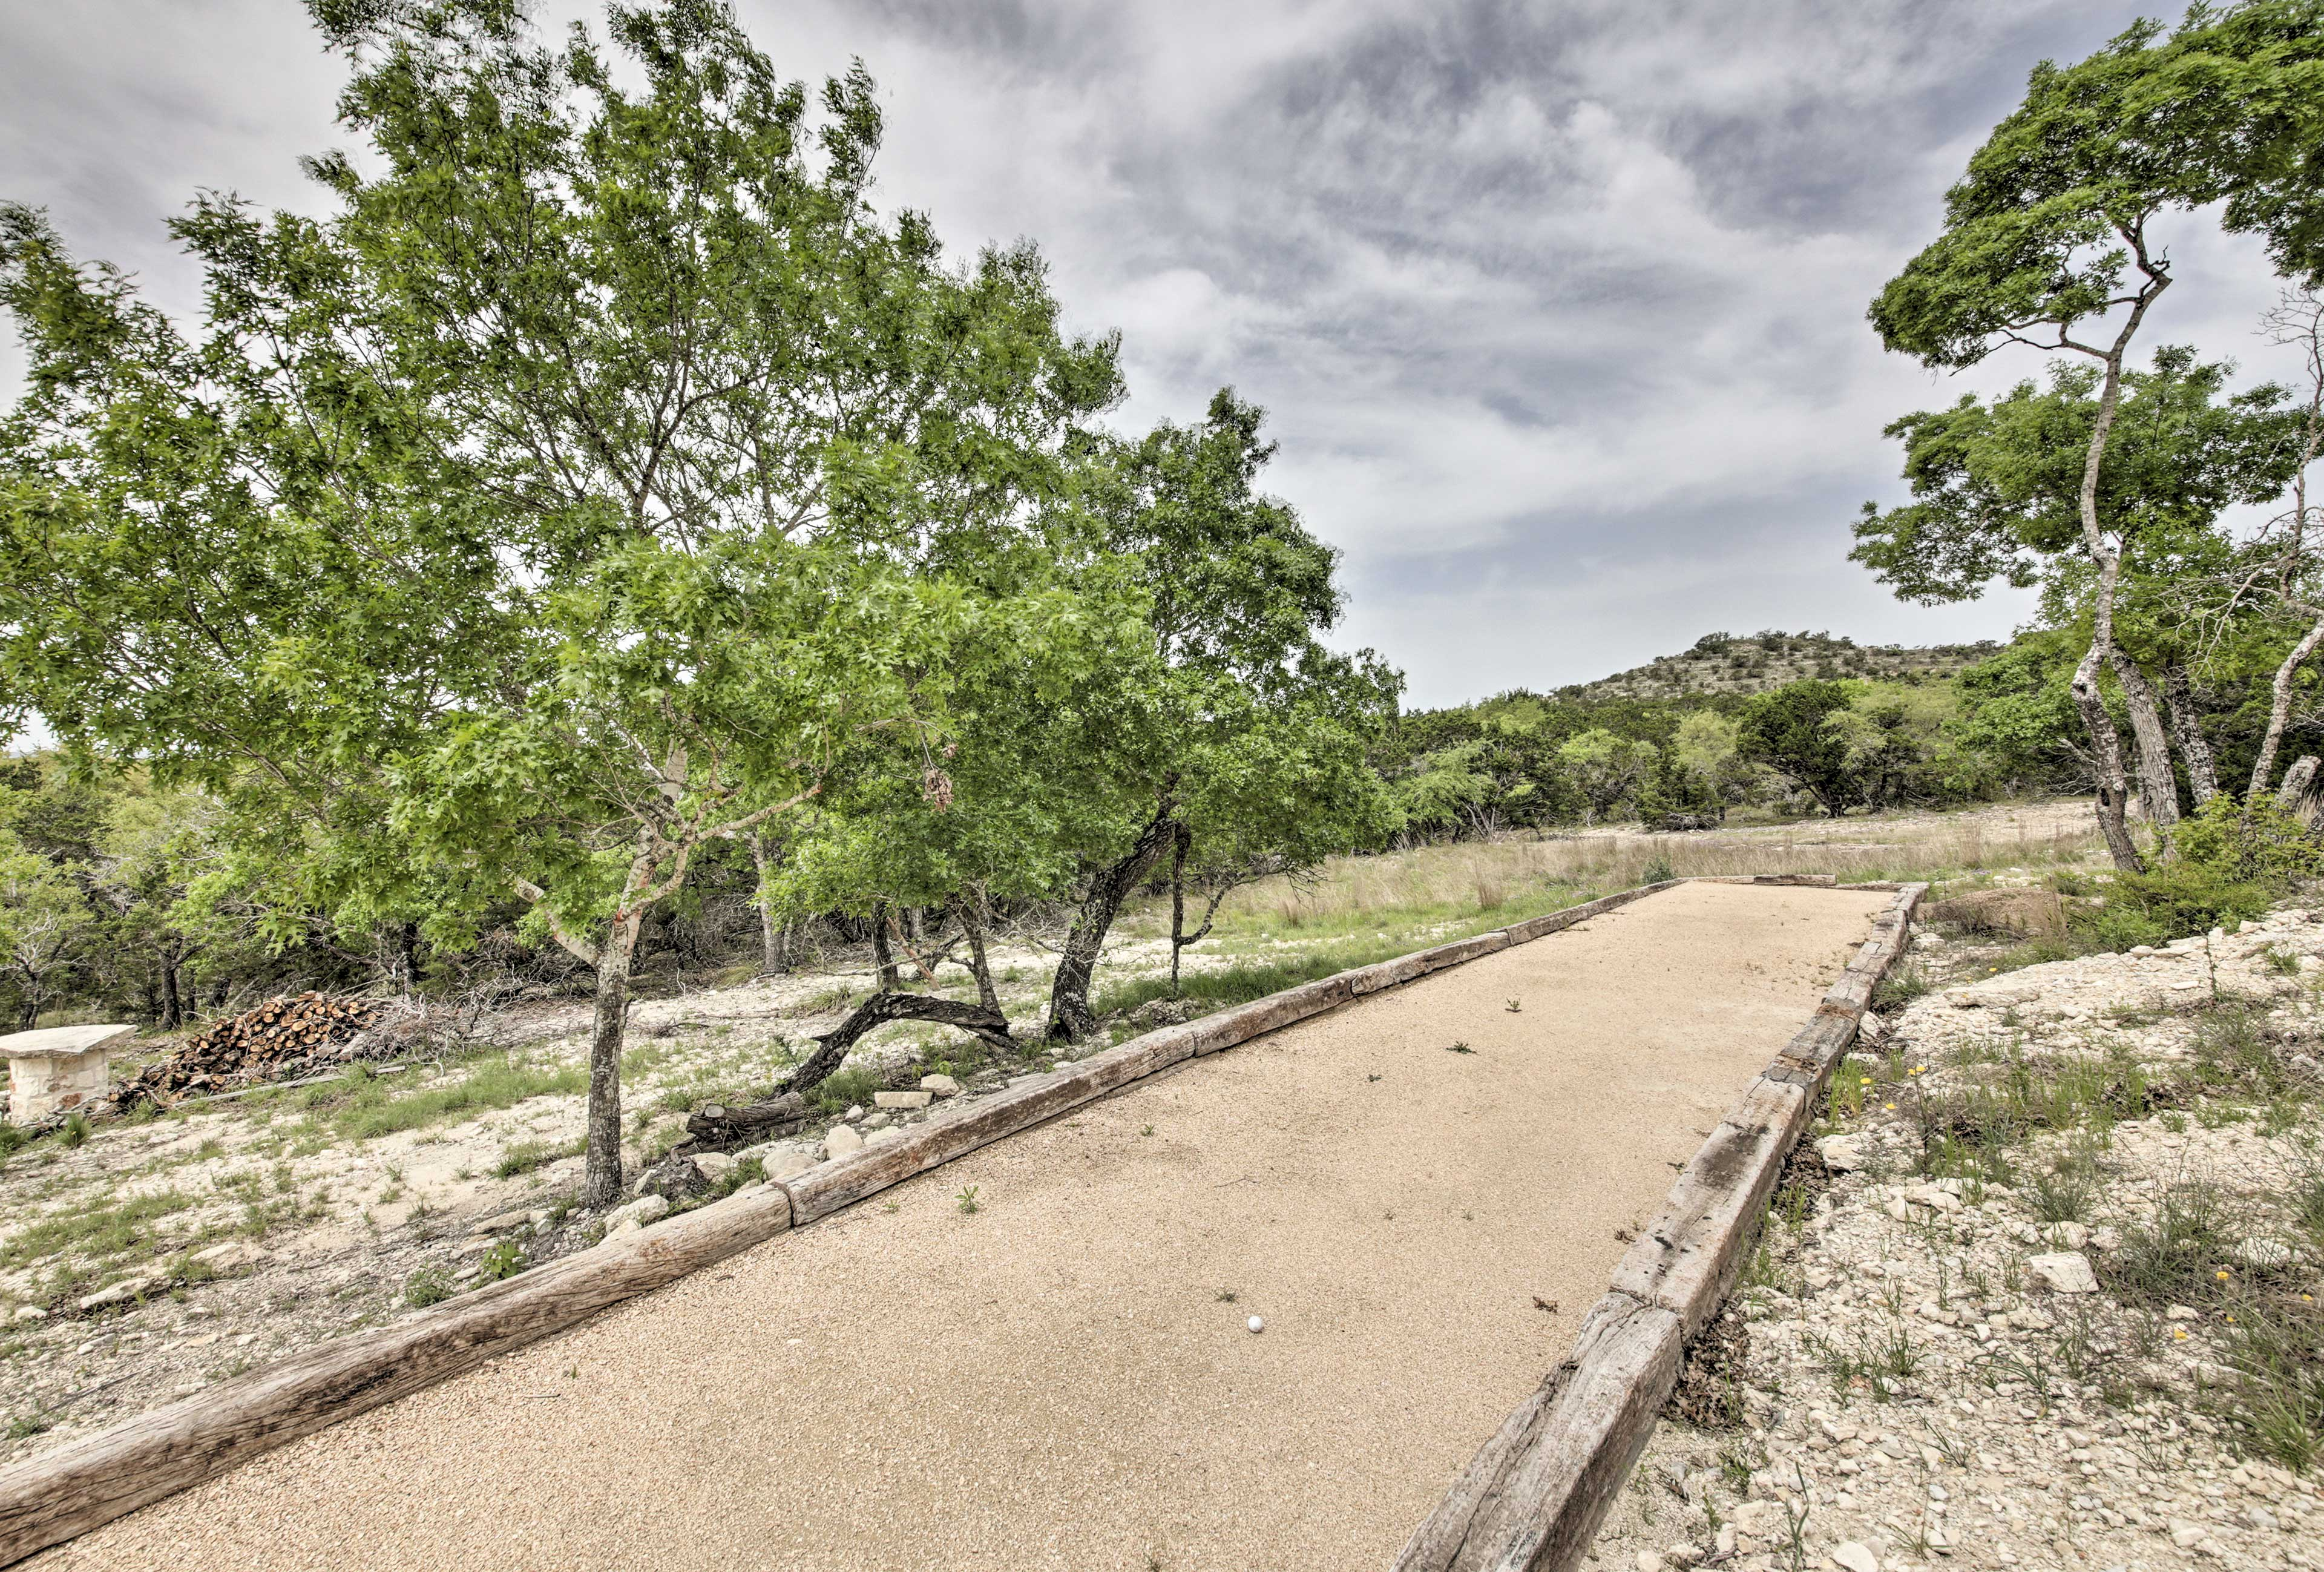 Have some fun on the bocce ball court!